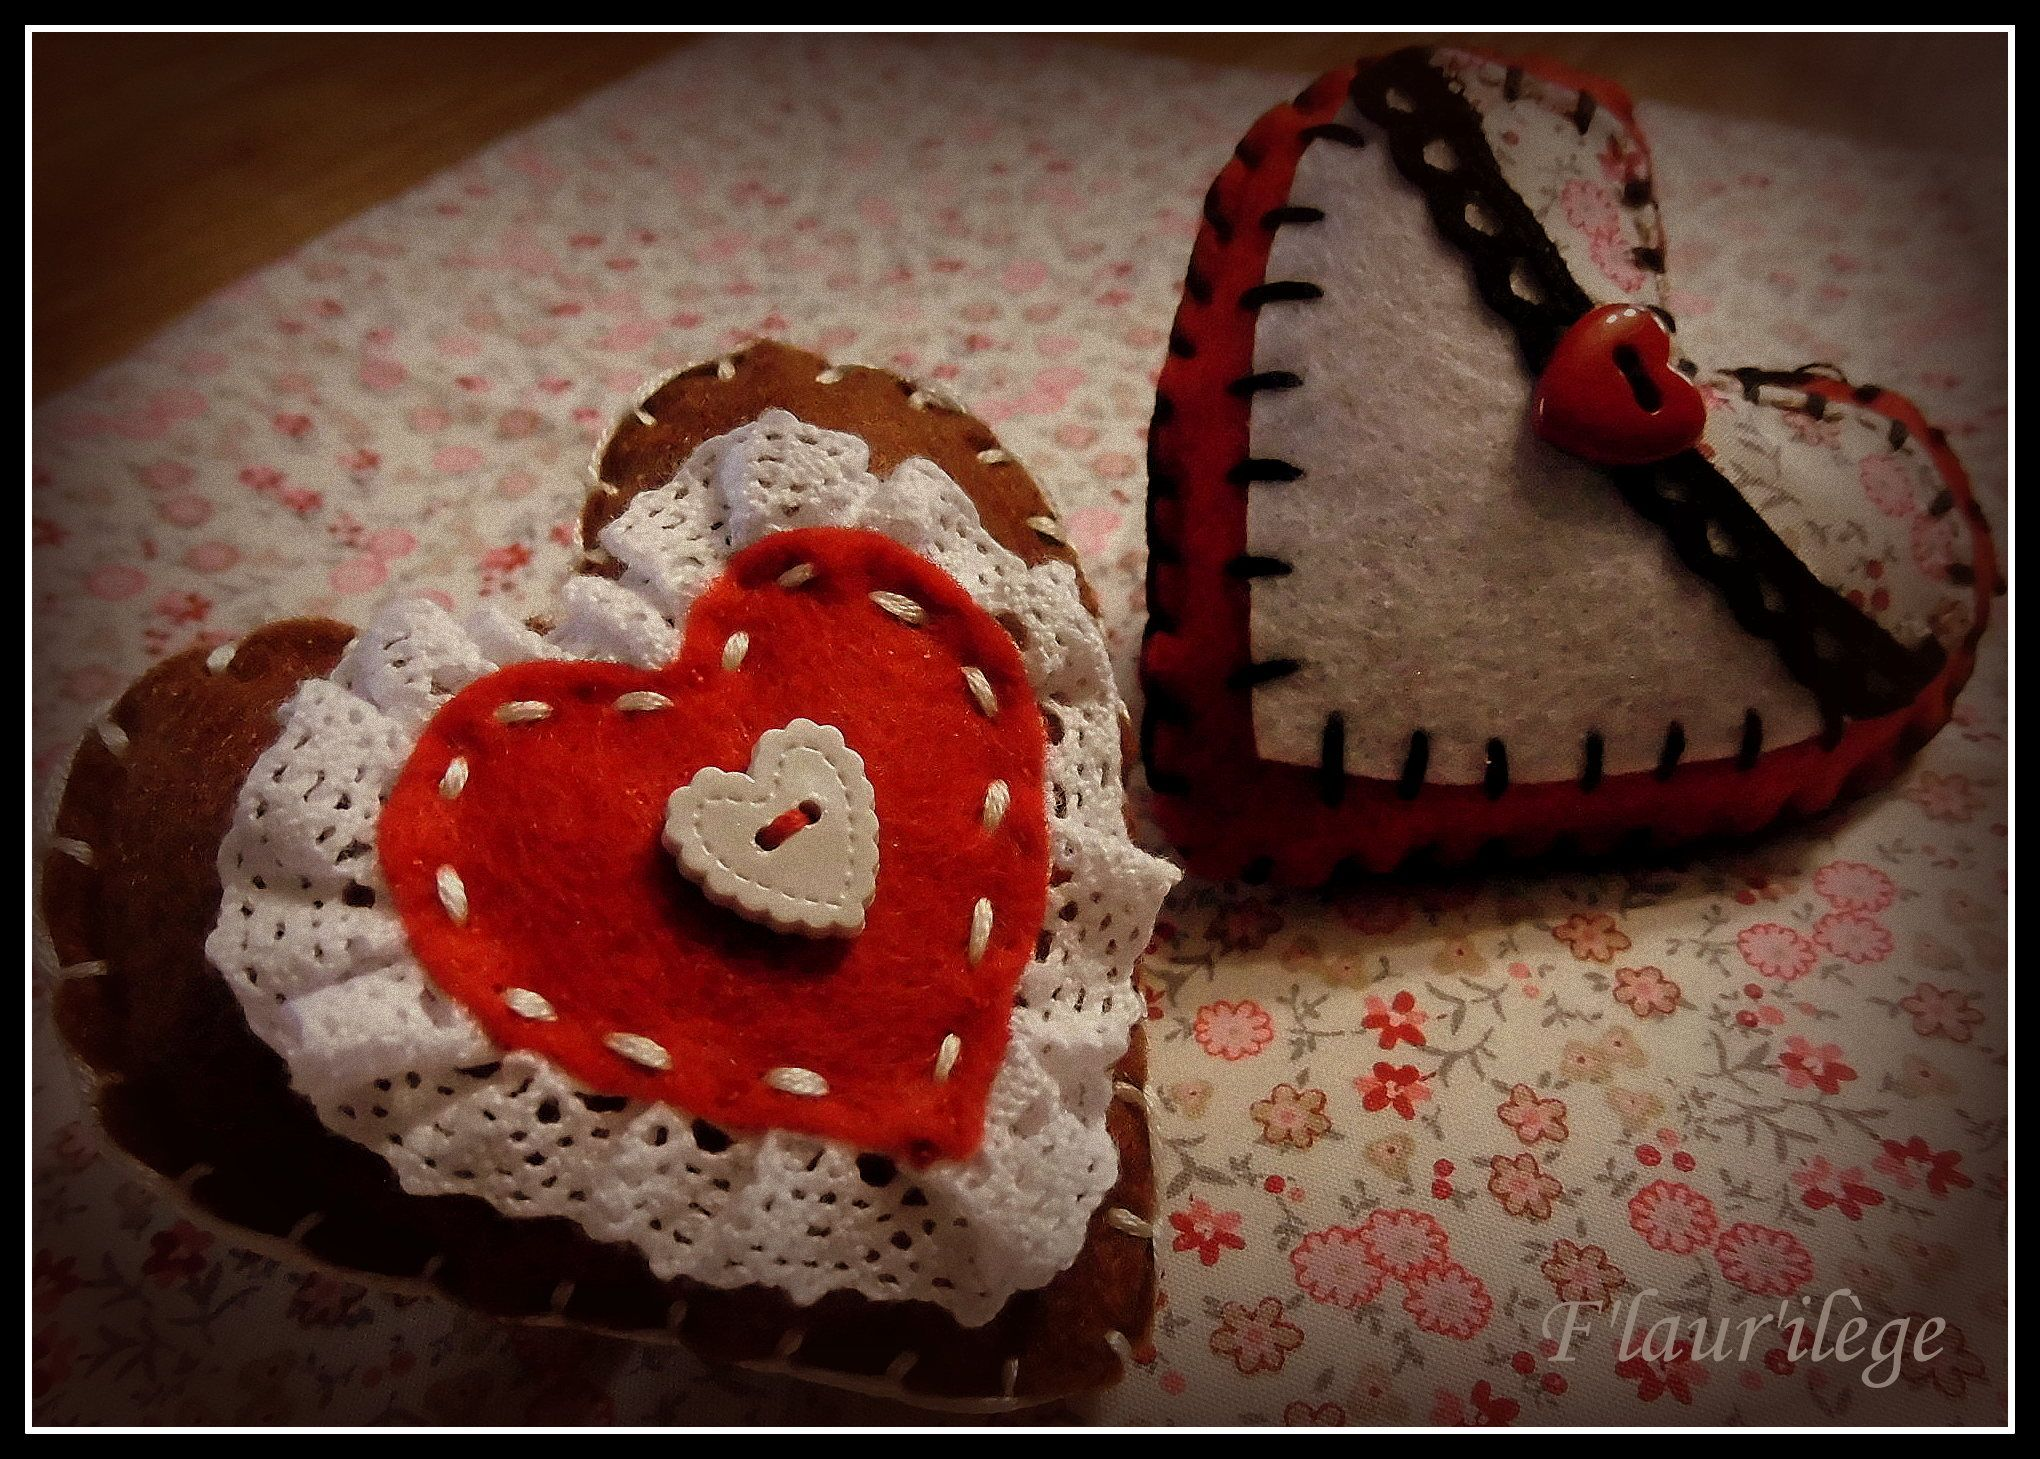 For my Valentine's sweet table 2014 http://flaurilege.canalblog.com/archives/2014/02/17/29235492.html